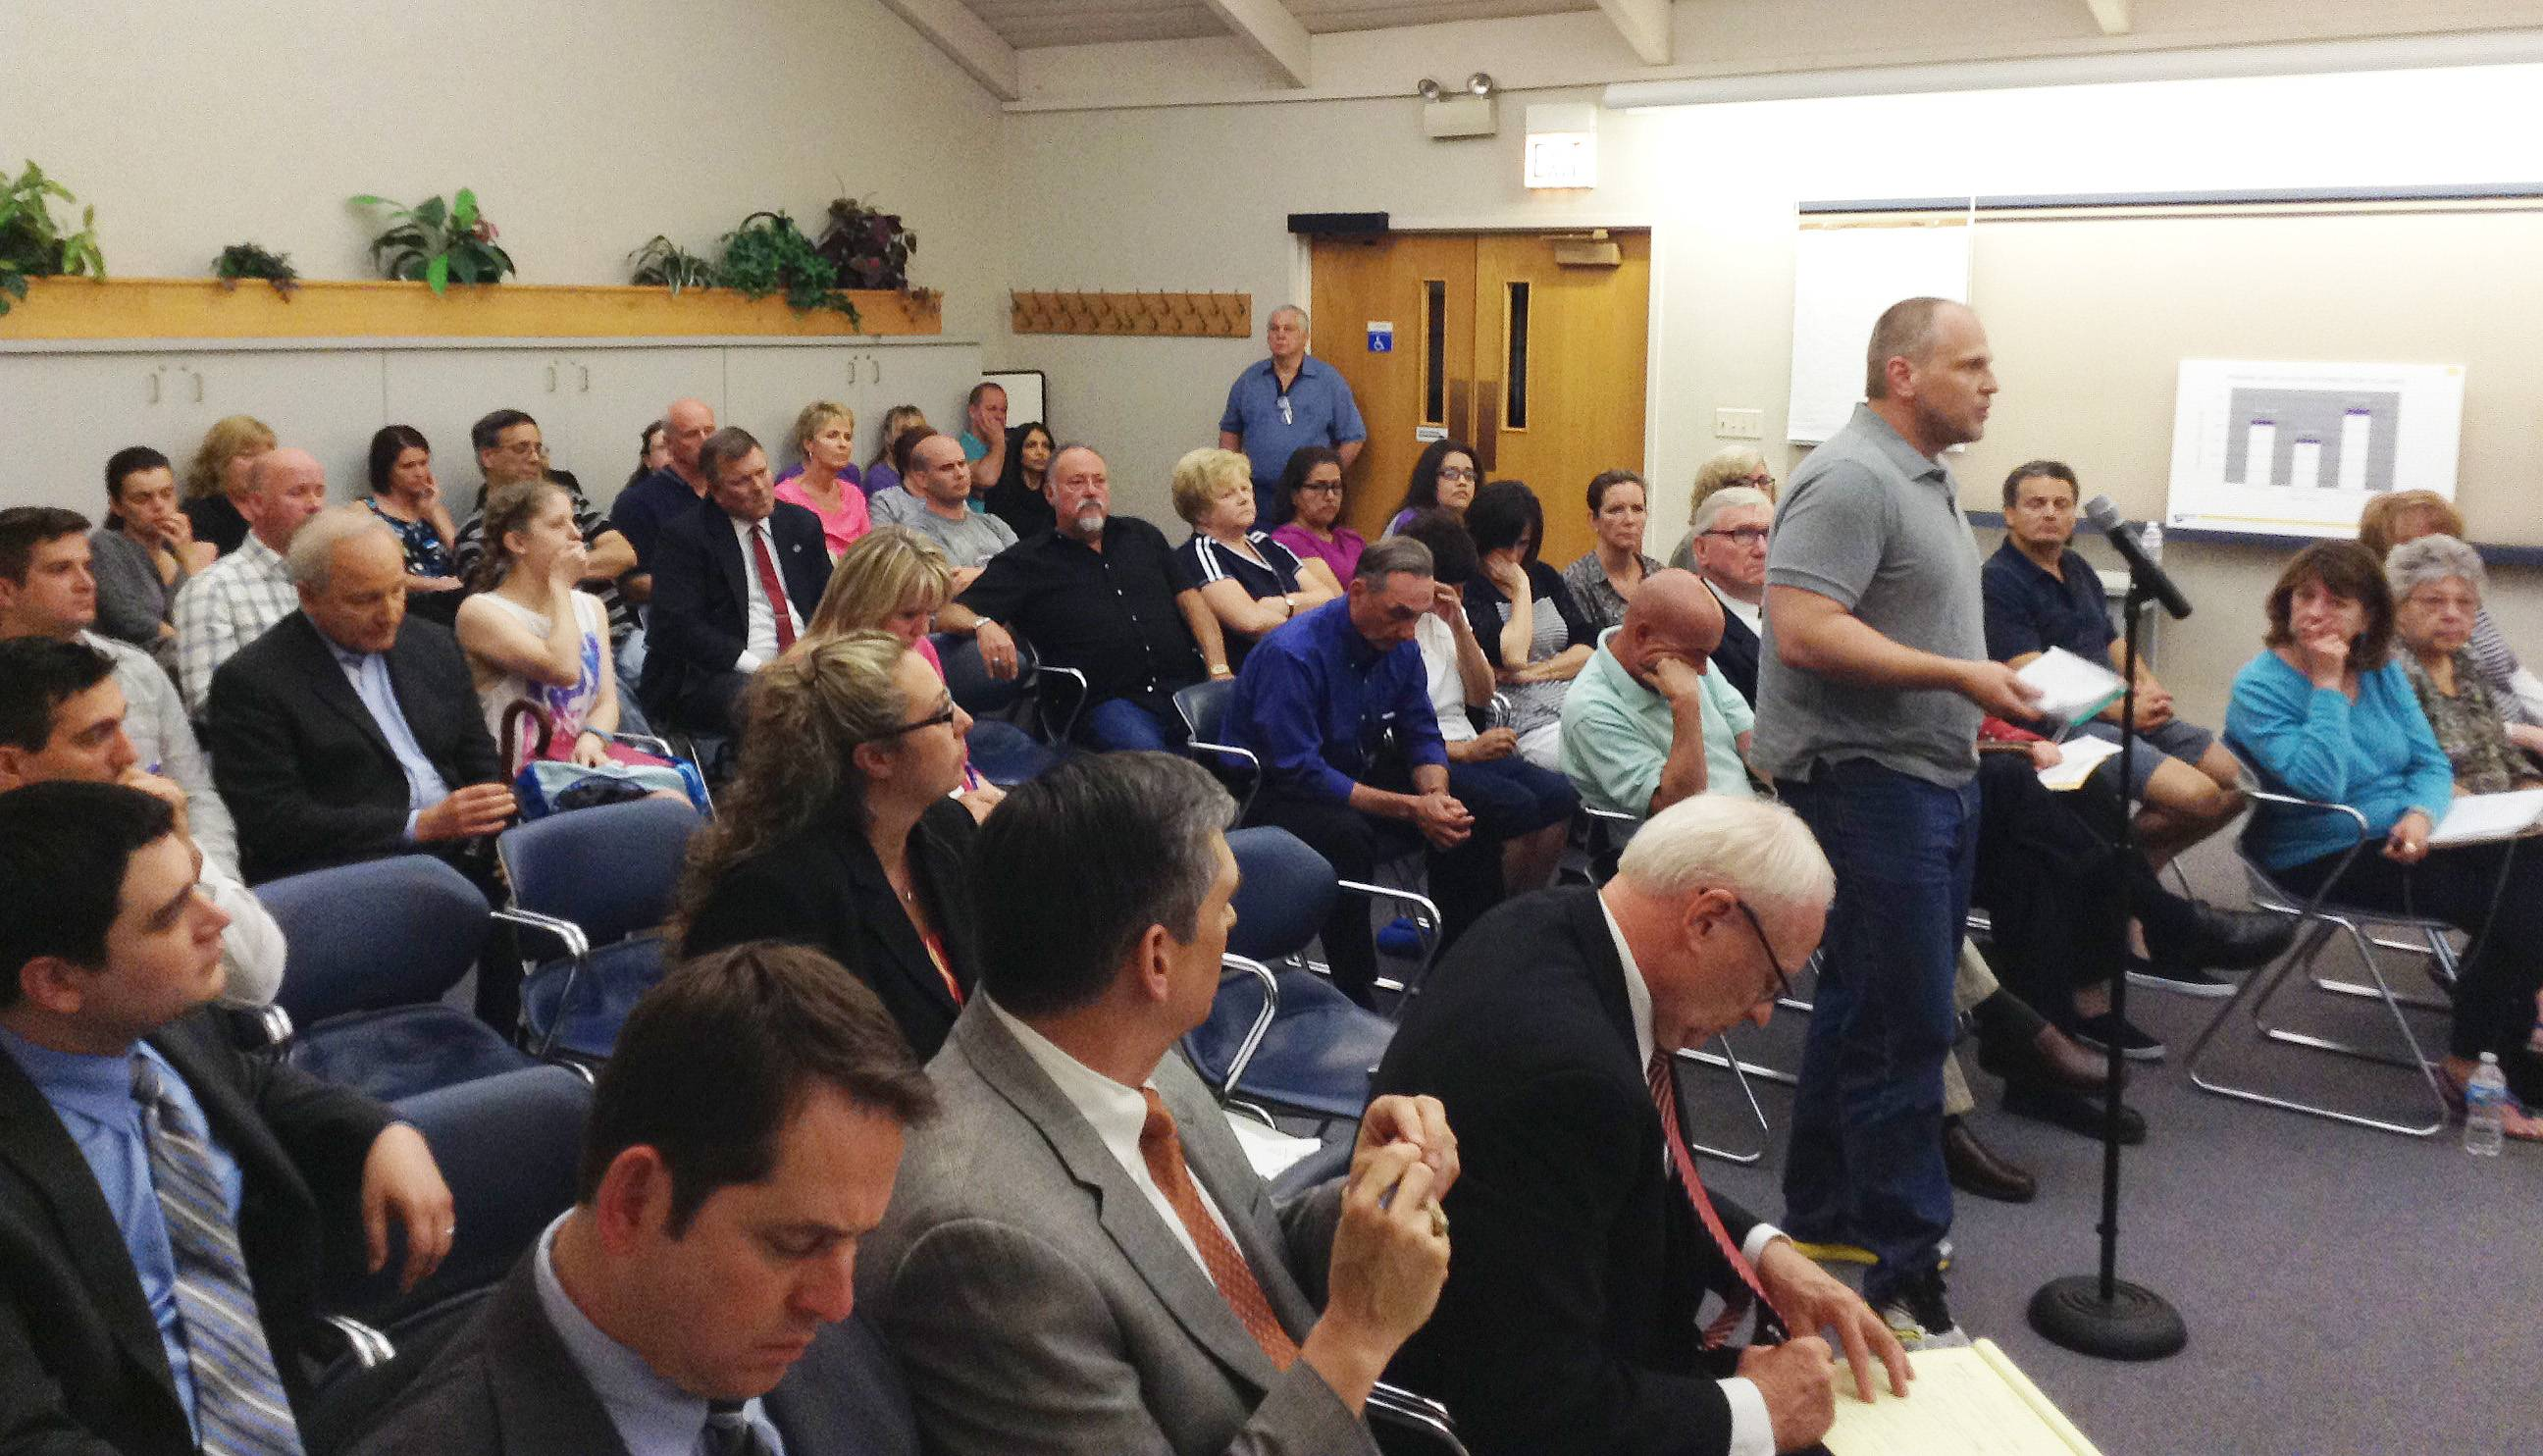 Residents filled the board room at Bloomingdale village hall Tuesday night to discuss Marklund's plan to expand its school for children with autism. The plan commission is recommending the village reject the nonprofit organization's request to build the nearly 12,000-square-foot addition.